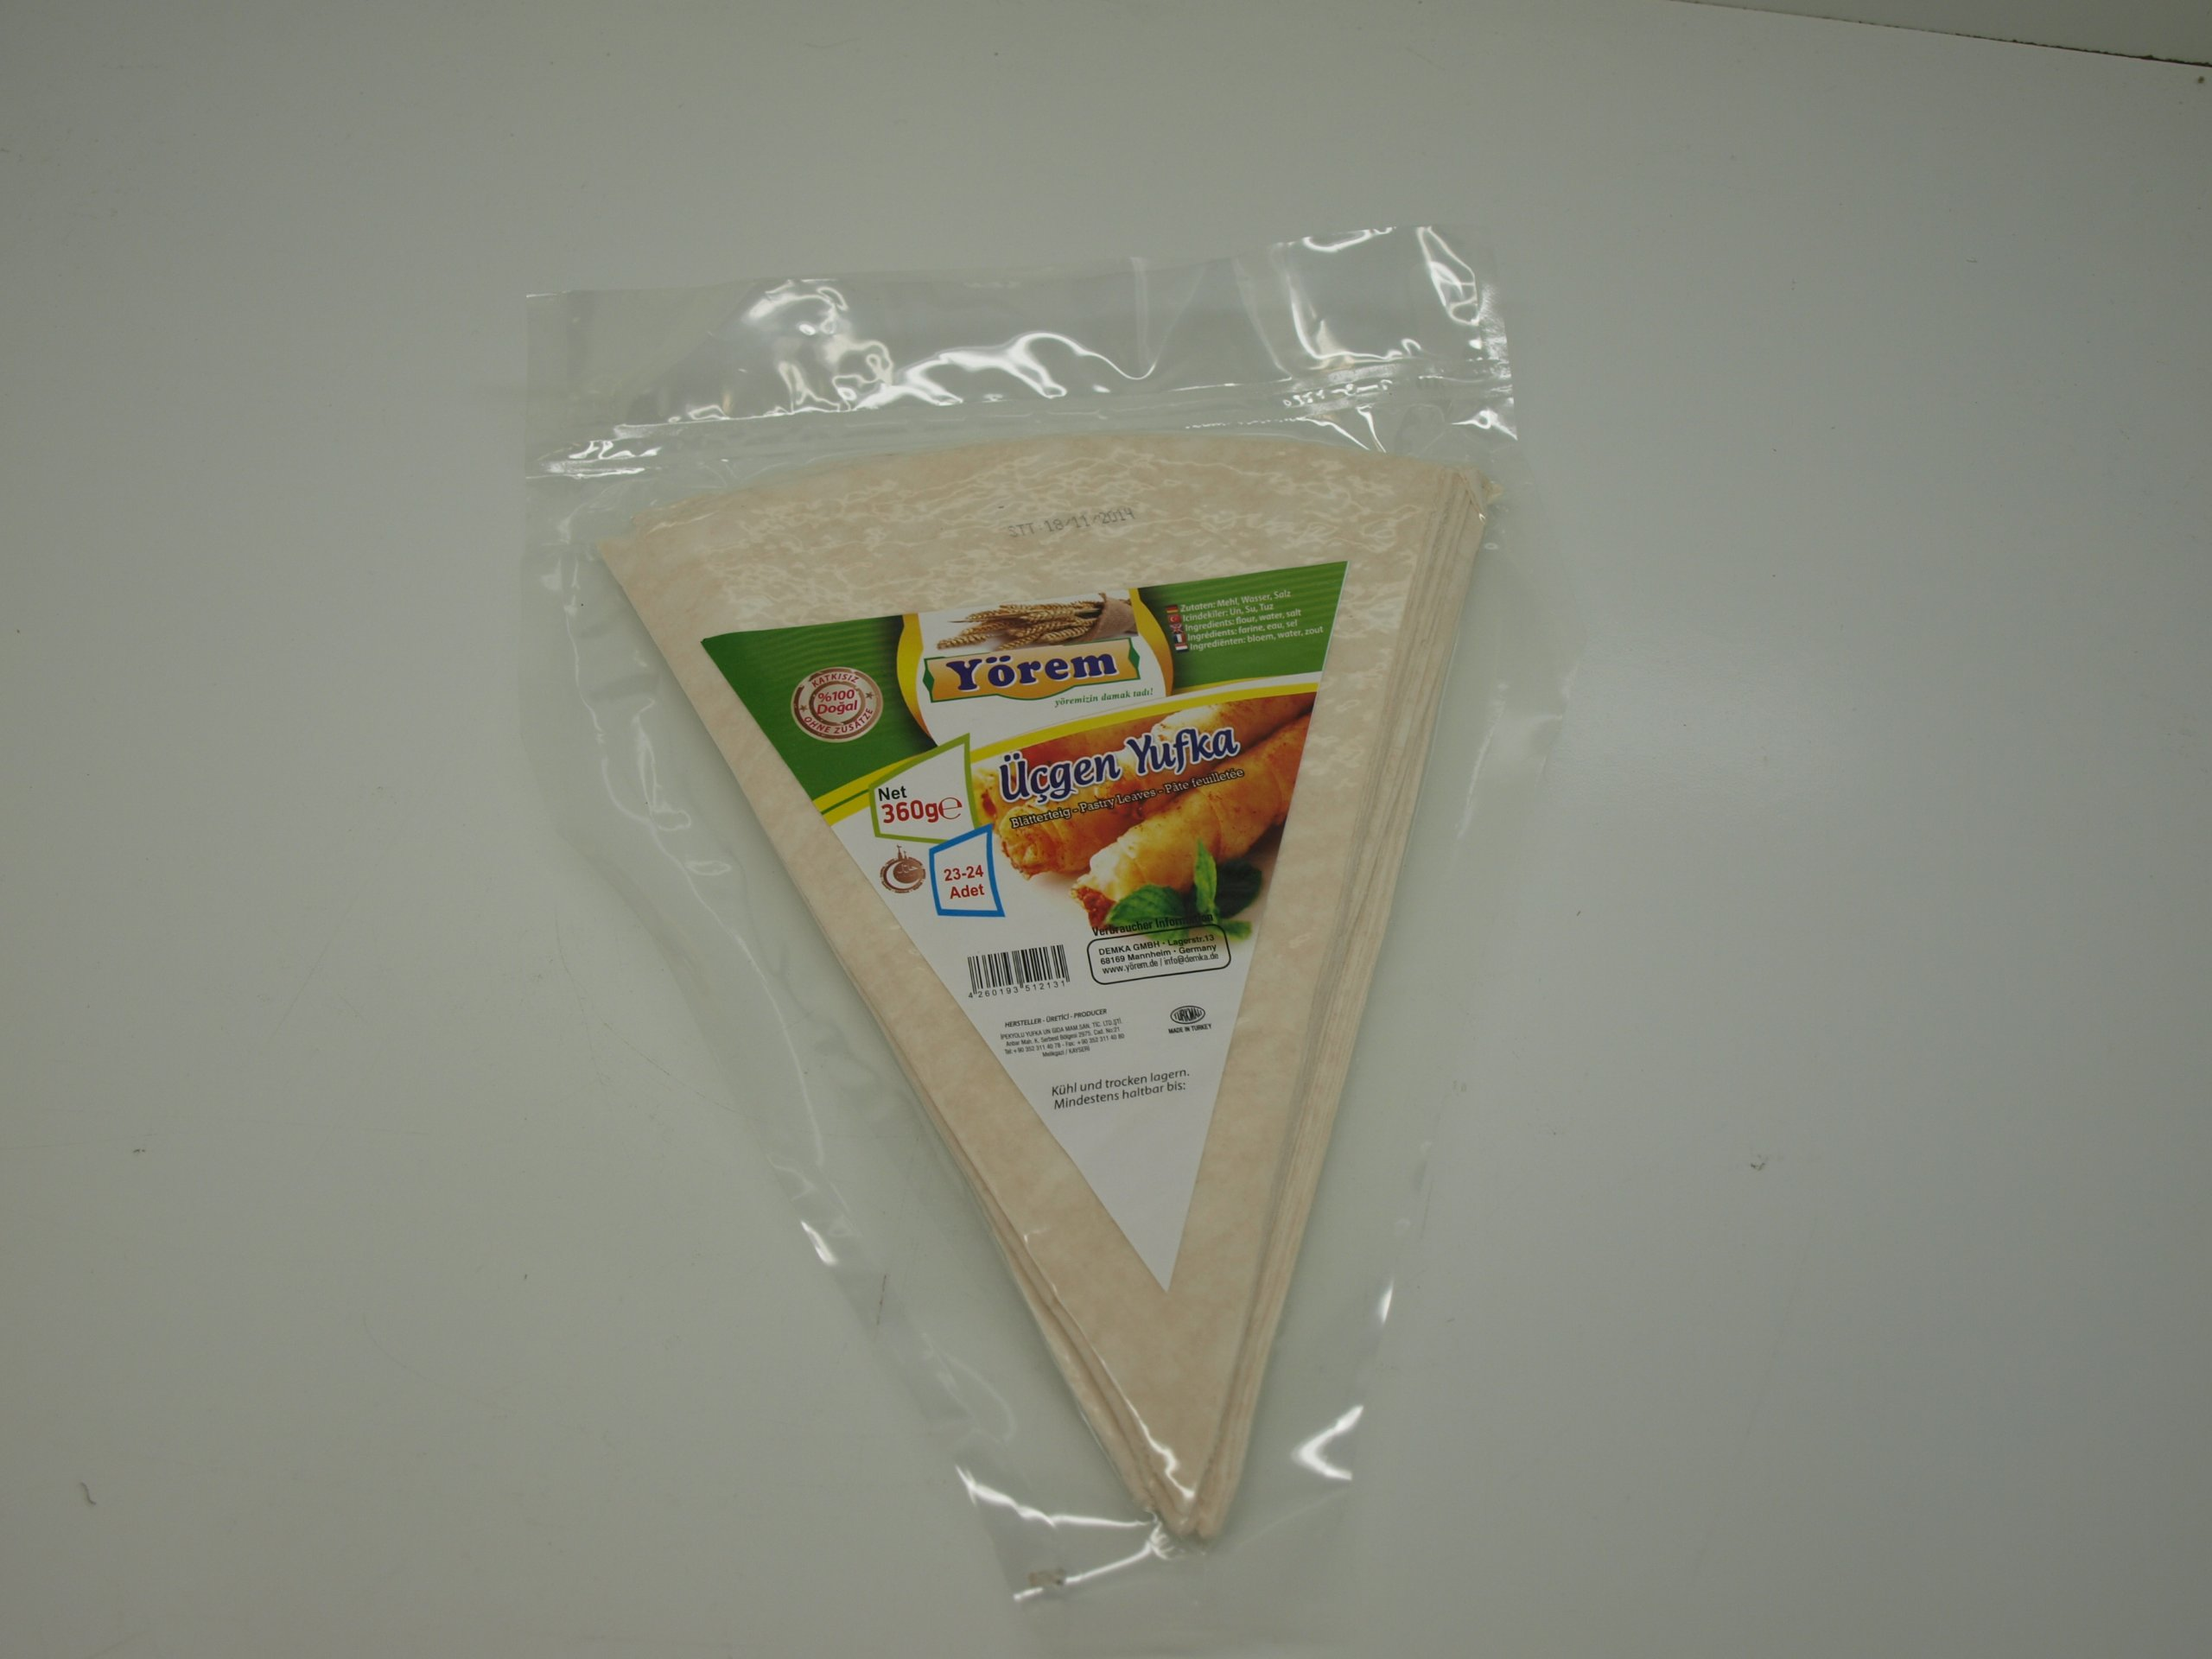 Pastry Leaves Yufka Triangle 2 Pack - 46 Pieces